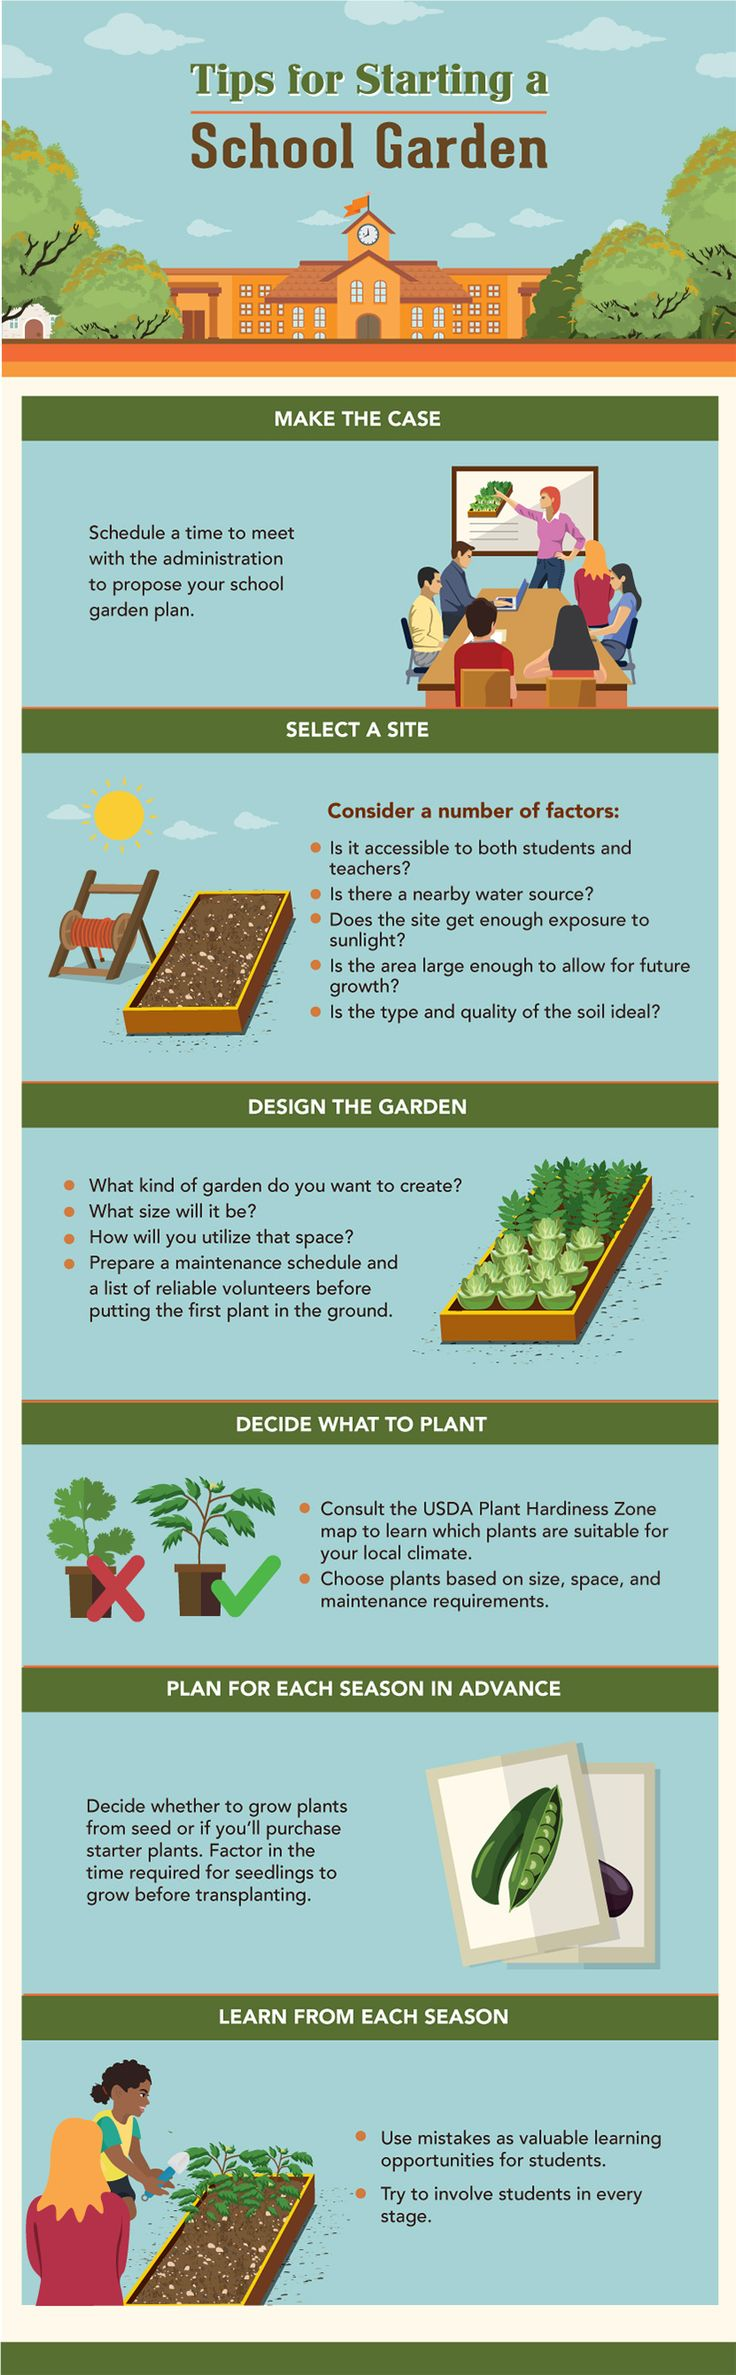 School gardens are blossoming across the country. Over the past decade,  school gardens have grown from a rarity to a well-known concept that  continues to gain traction in schools small and large, public and private,  rural and urban.1